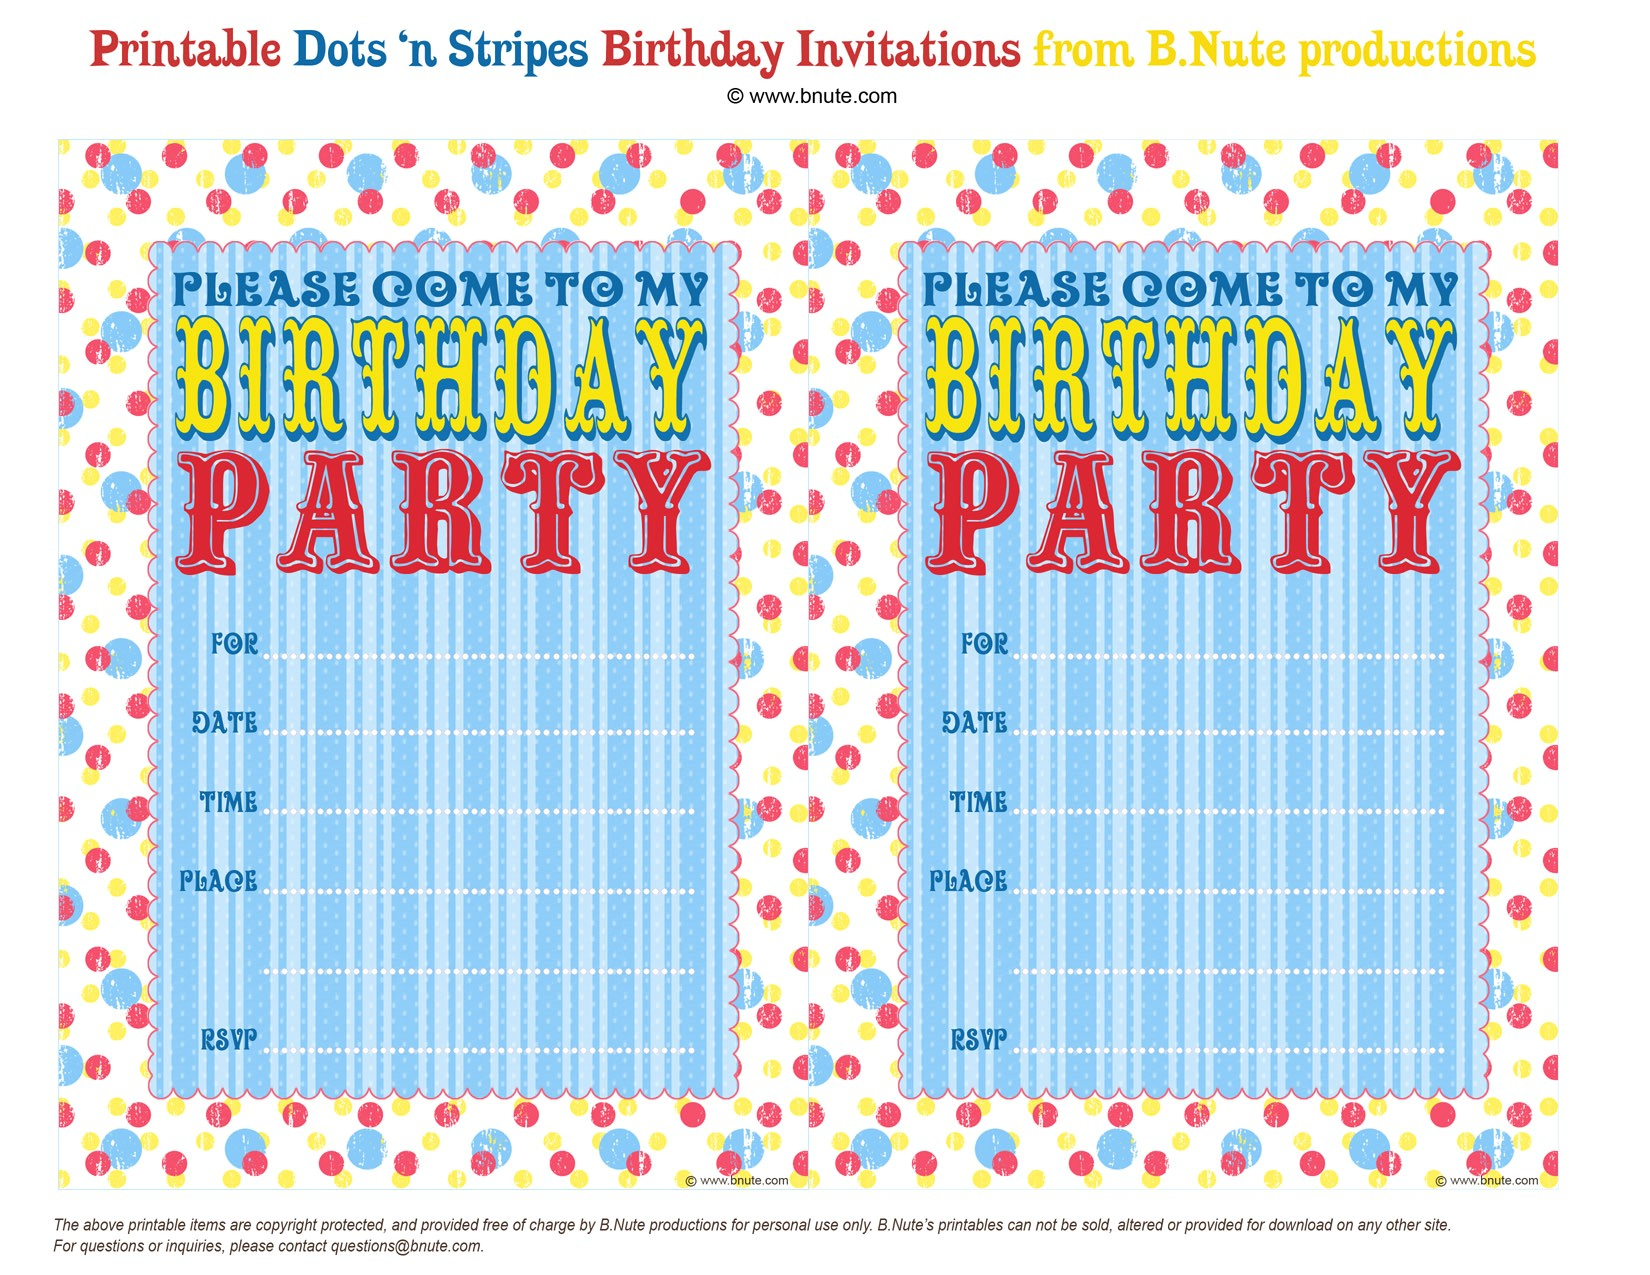 3 outstanding how to fill out a birthday party invitations